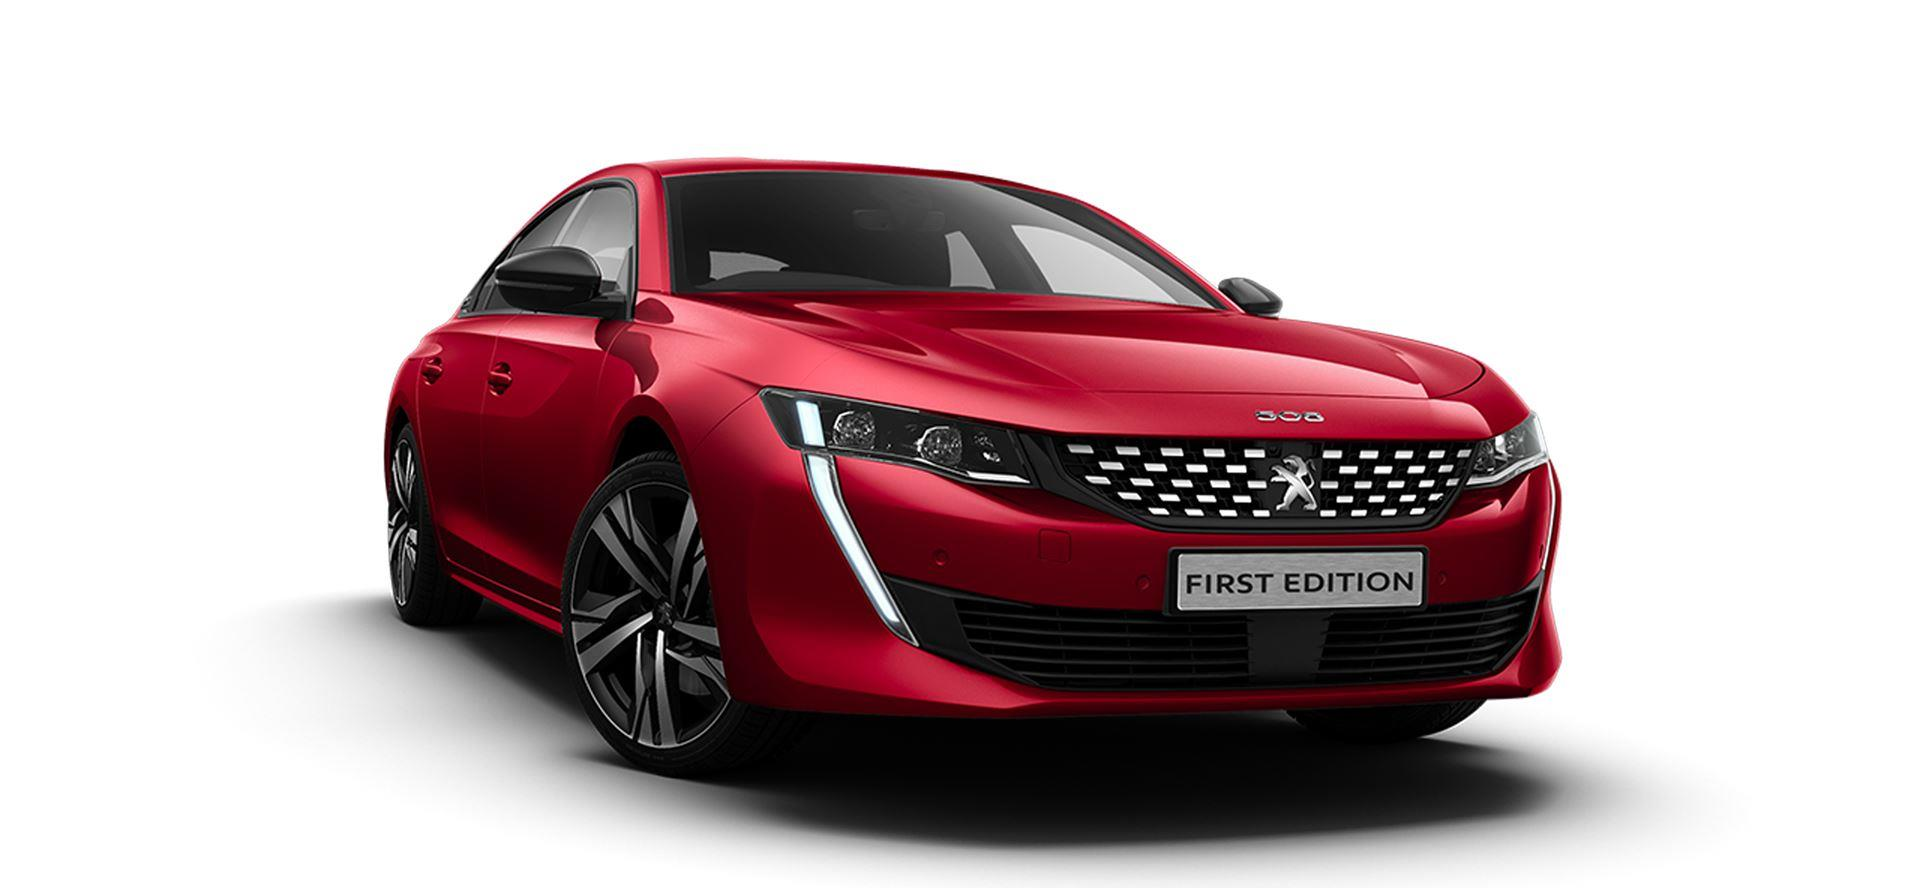 Peugeot First Car 2018 Peugeot 508 First Edition News And Information